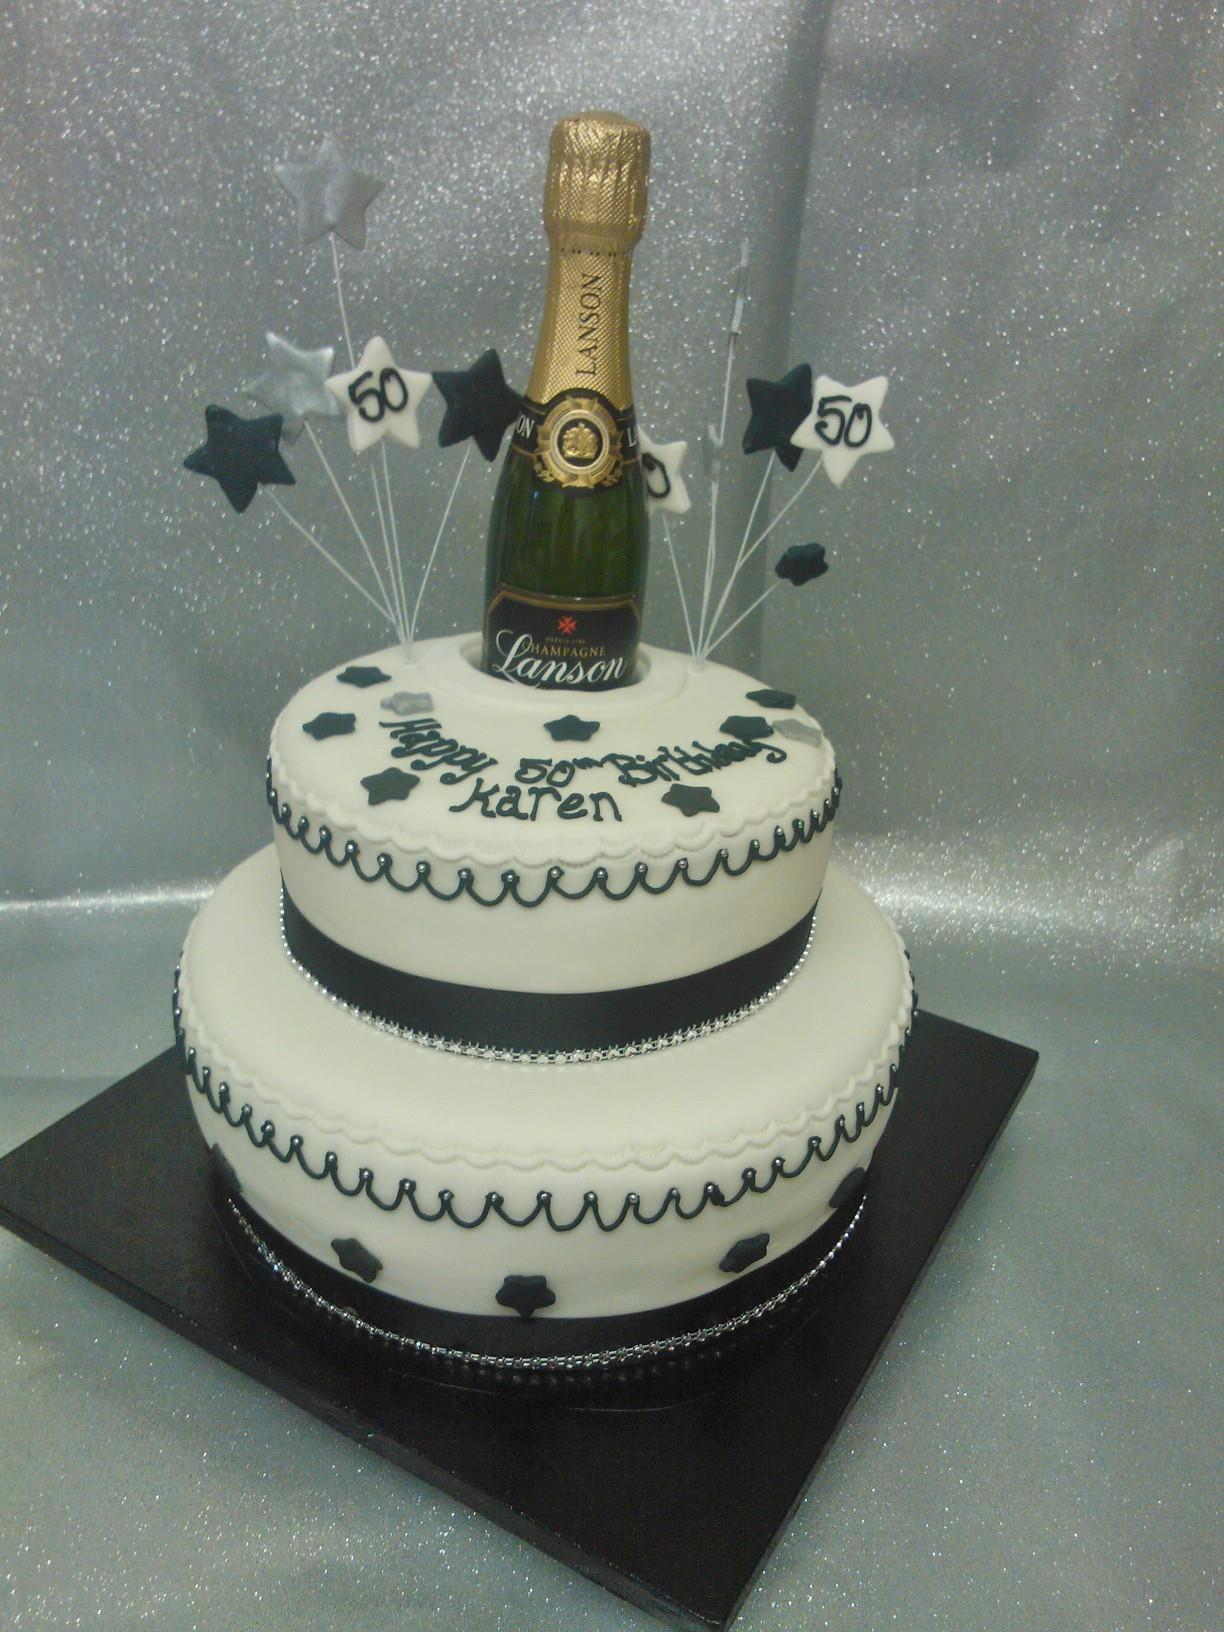 Pin Crosswords And Champagne Bottle Birthday Cake For ...